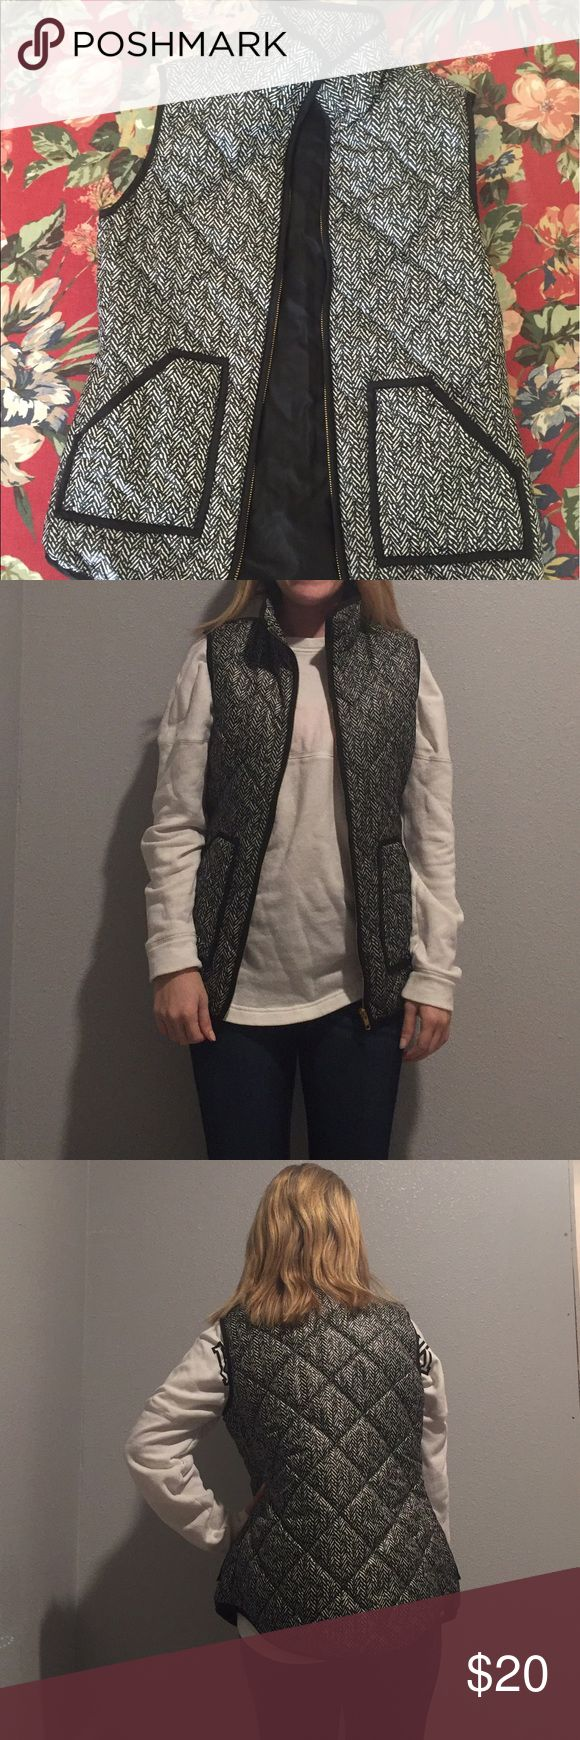 """Black and white puffer vest Size small black and white puffer vest. Like new. I would style this vest with my """"Black Top"""" listing & my """"True red infinity scarf"""" listing of my """"Rogue Top from ShopHopes"""" listing. Bundle up & save! Jackets & Coats Vests"""